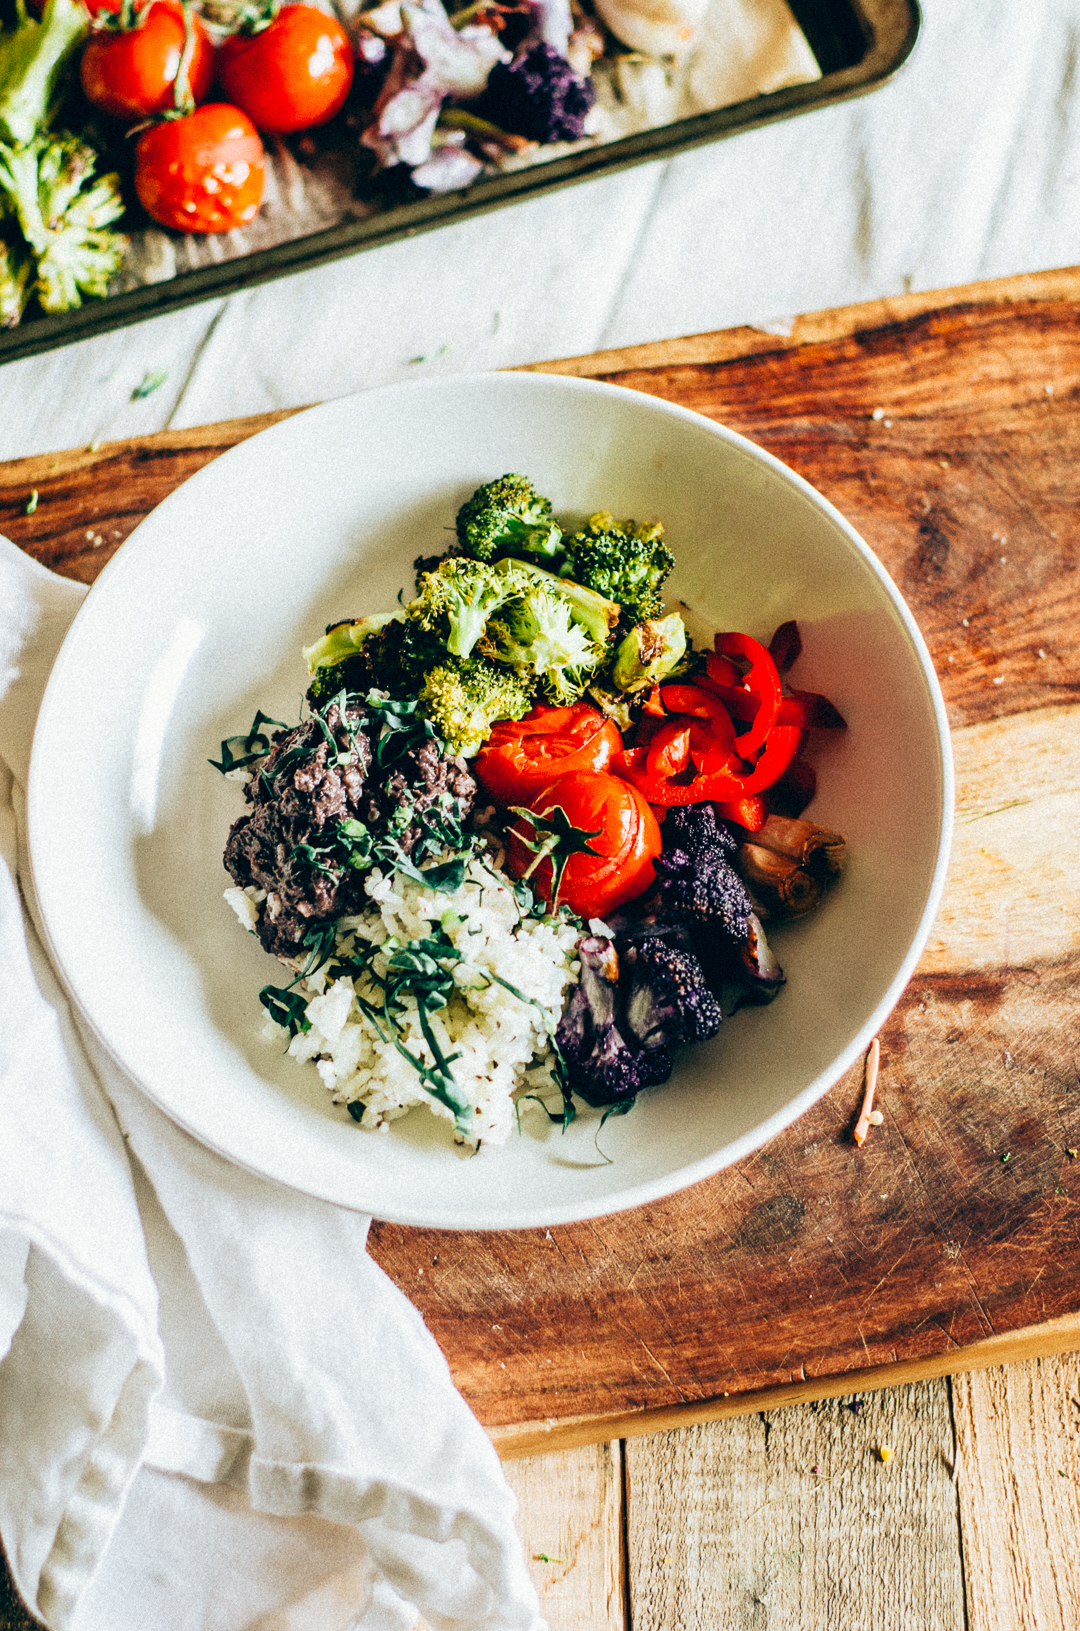 This Roasted Broccoli Bowl recipe is to die for. It features simple seasonal ingredients such as cauliflower, kholrabi & tomato. It's suitable for any vegetarian eater! thenomadicwife.com